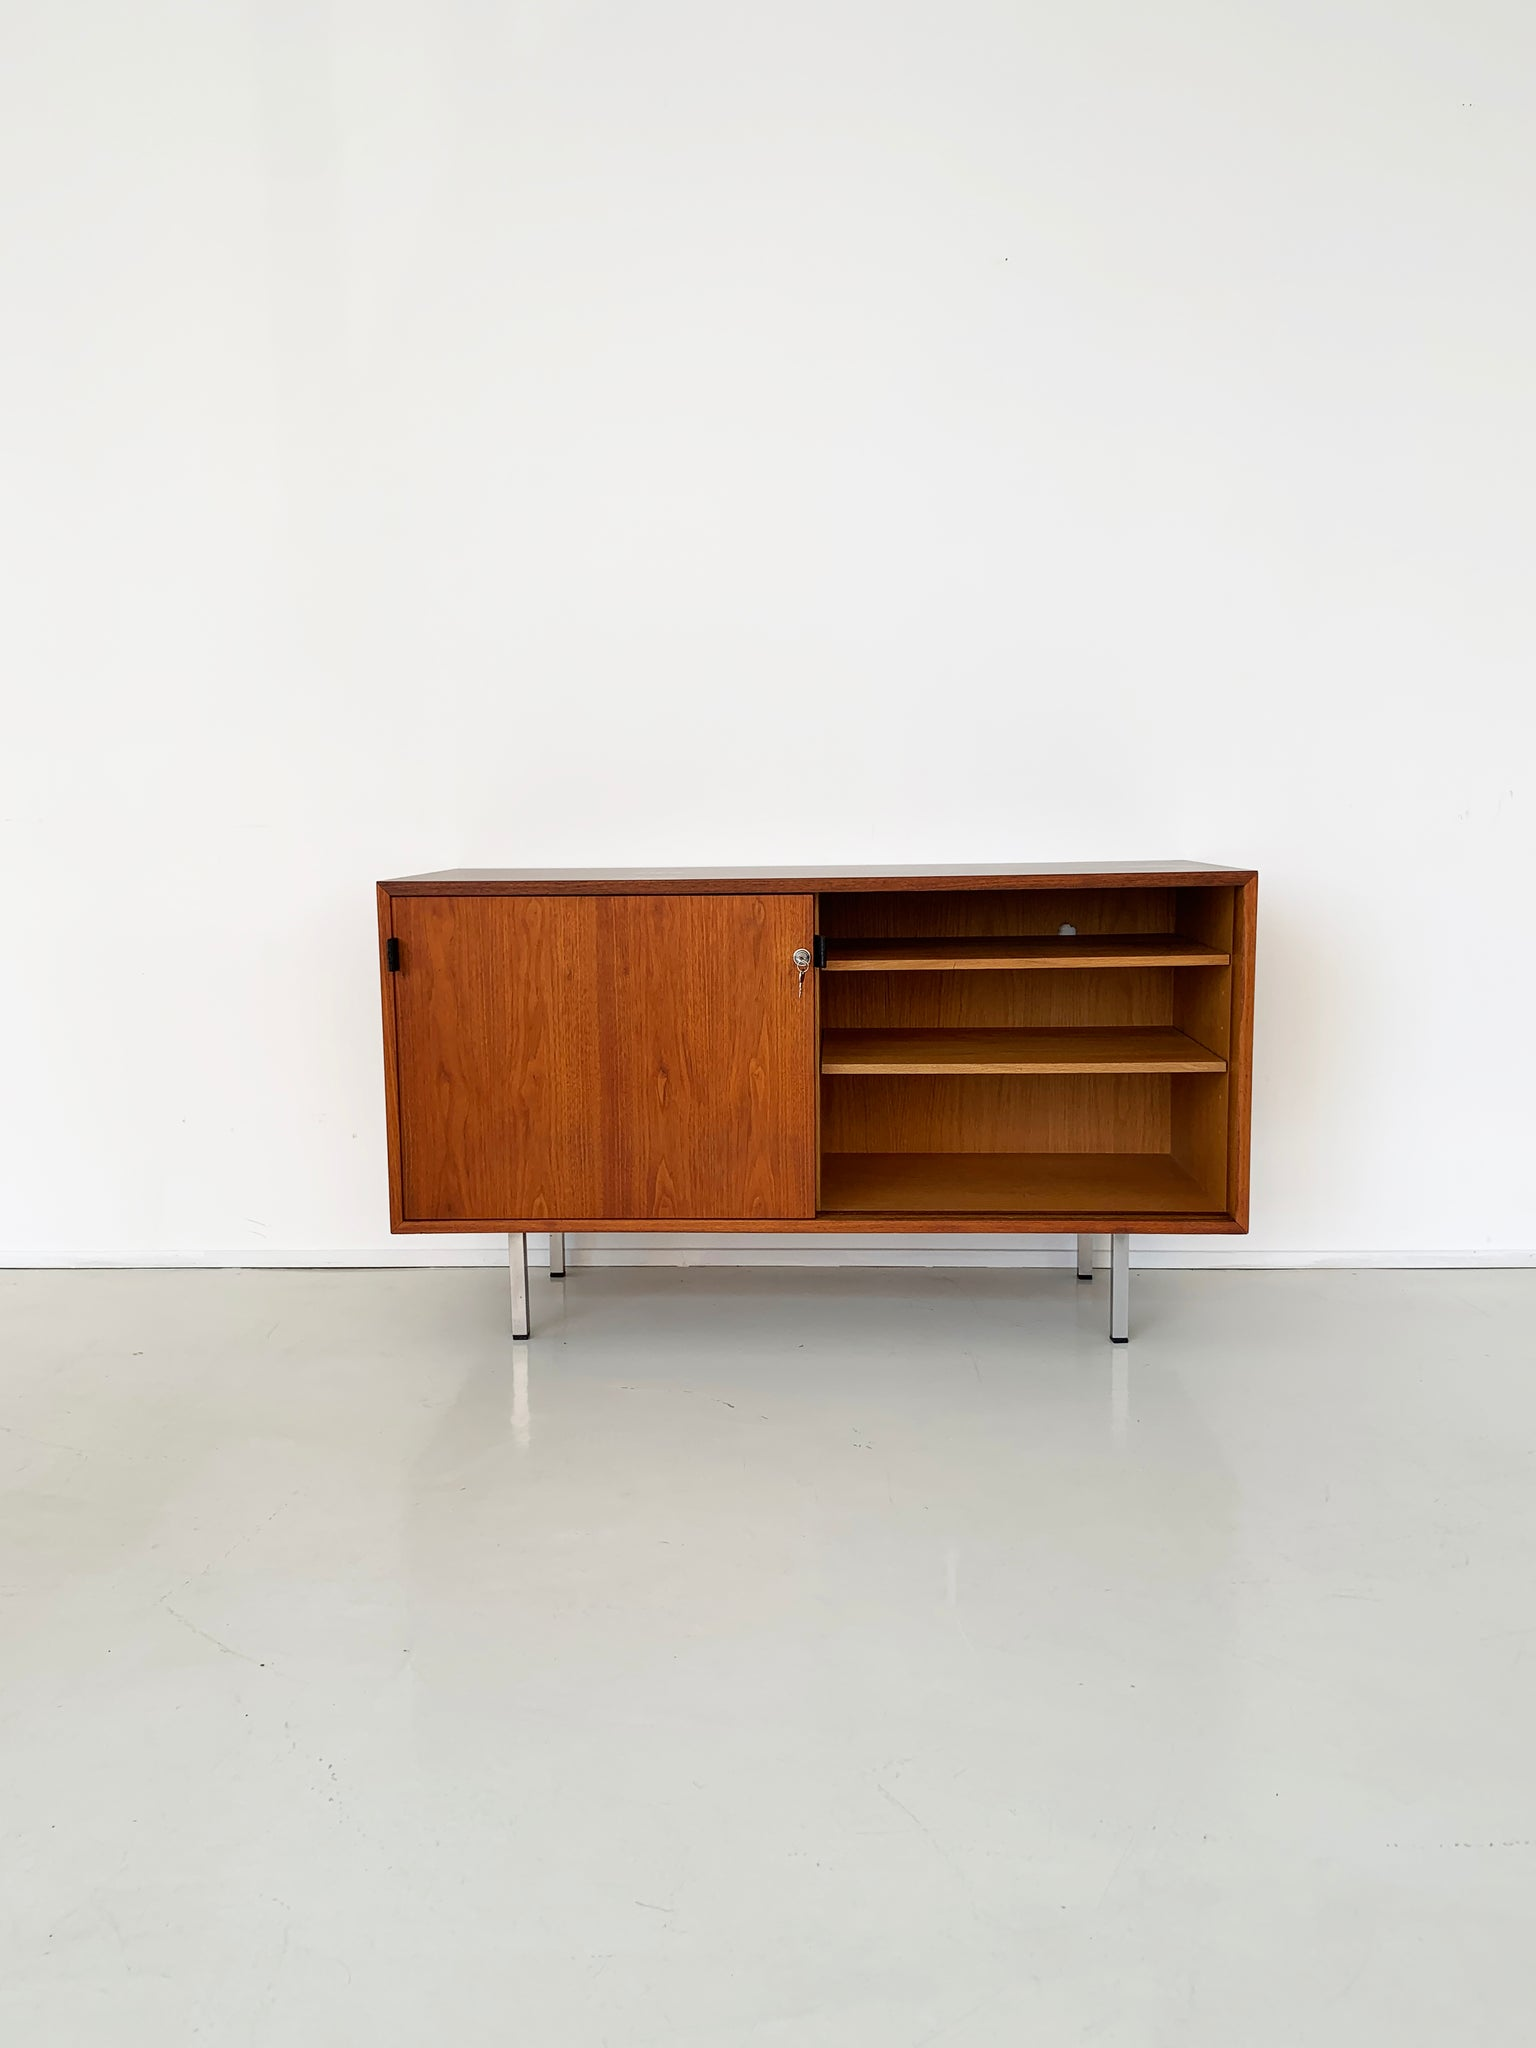 1968 Walnut Credenza by Florence Knoll